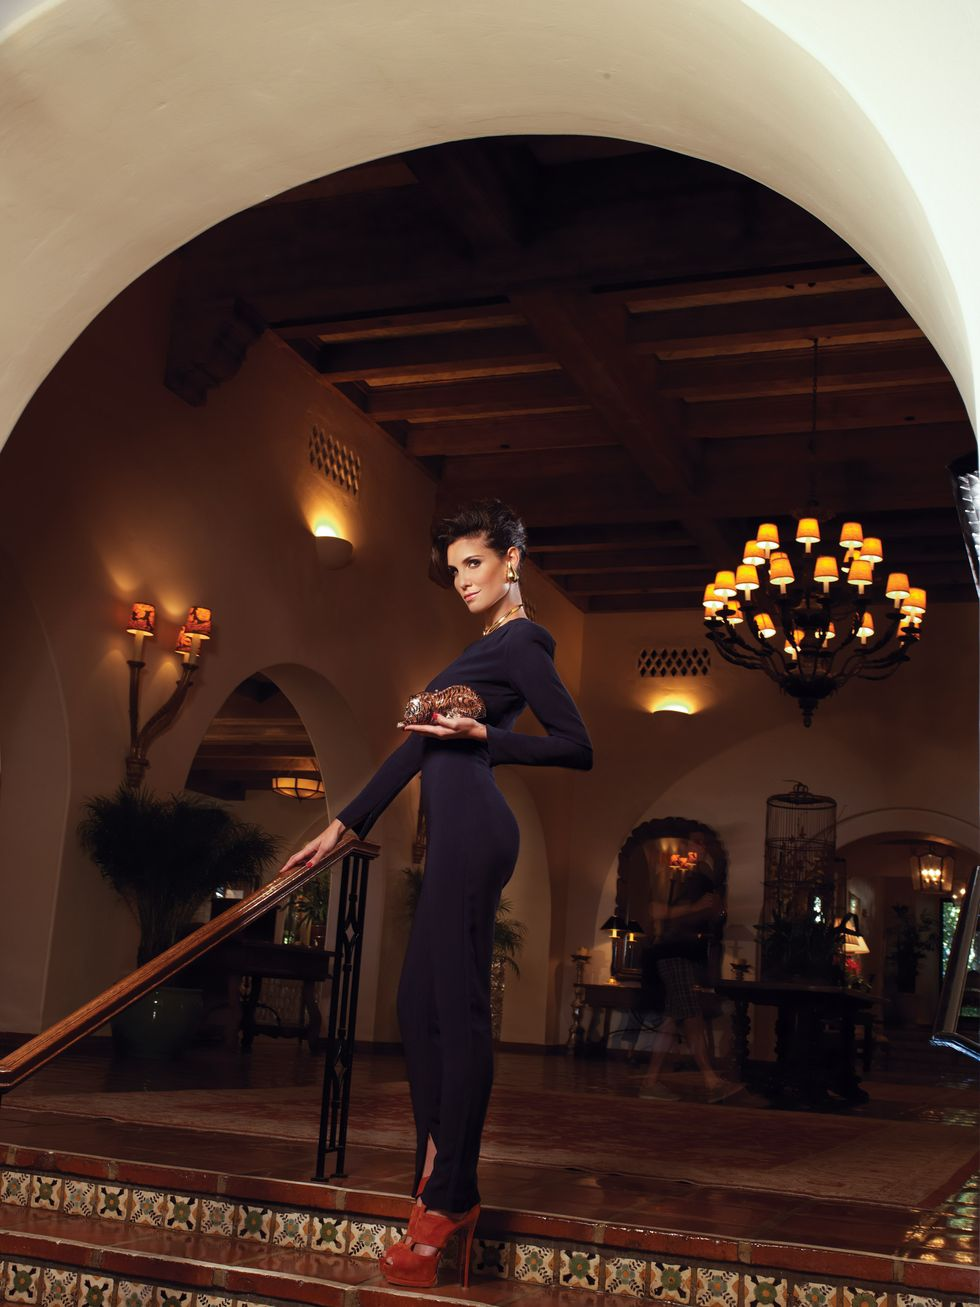 Daniela Ruah wears a tight knit top with black pants while posing at the top of a staircase.